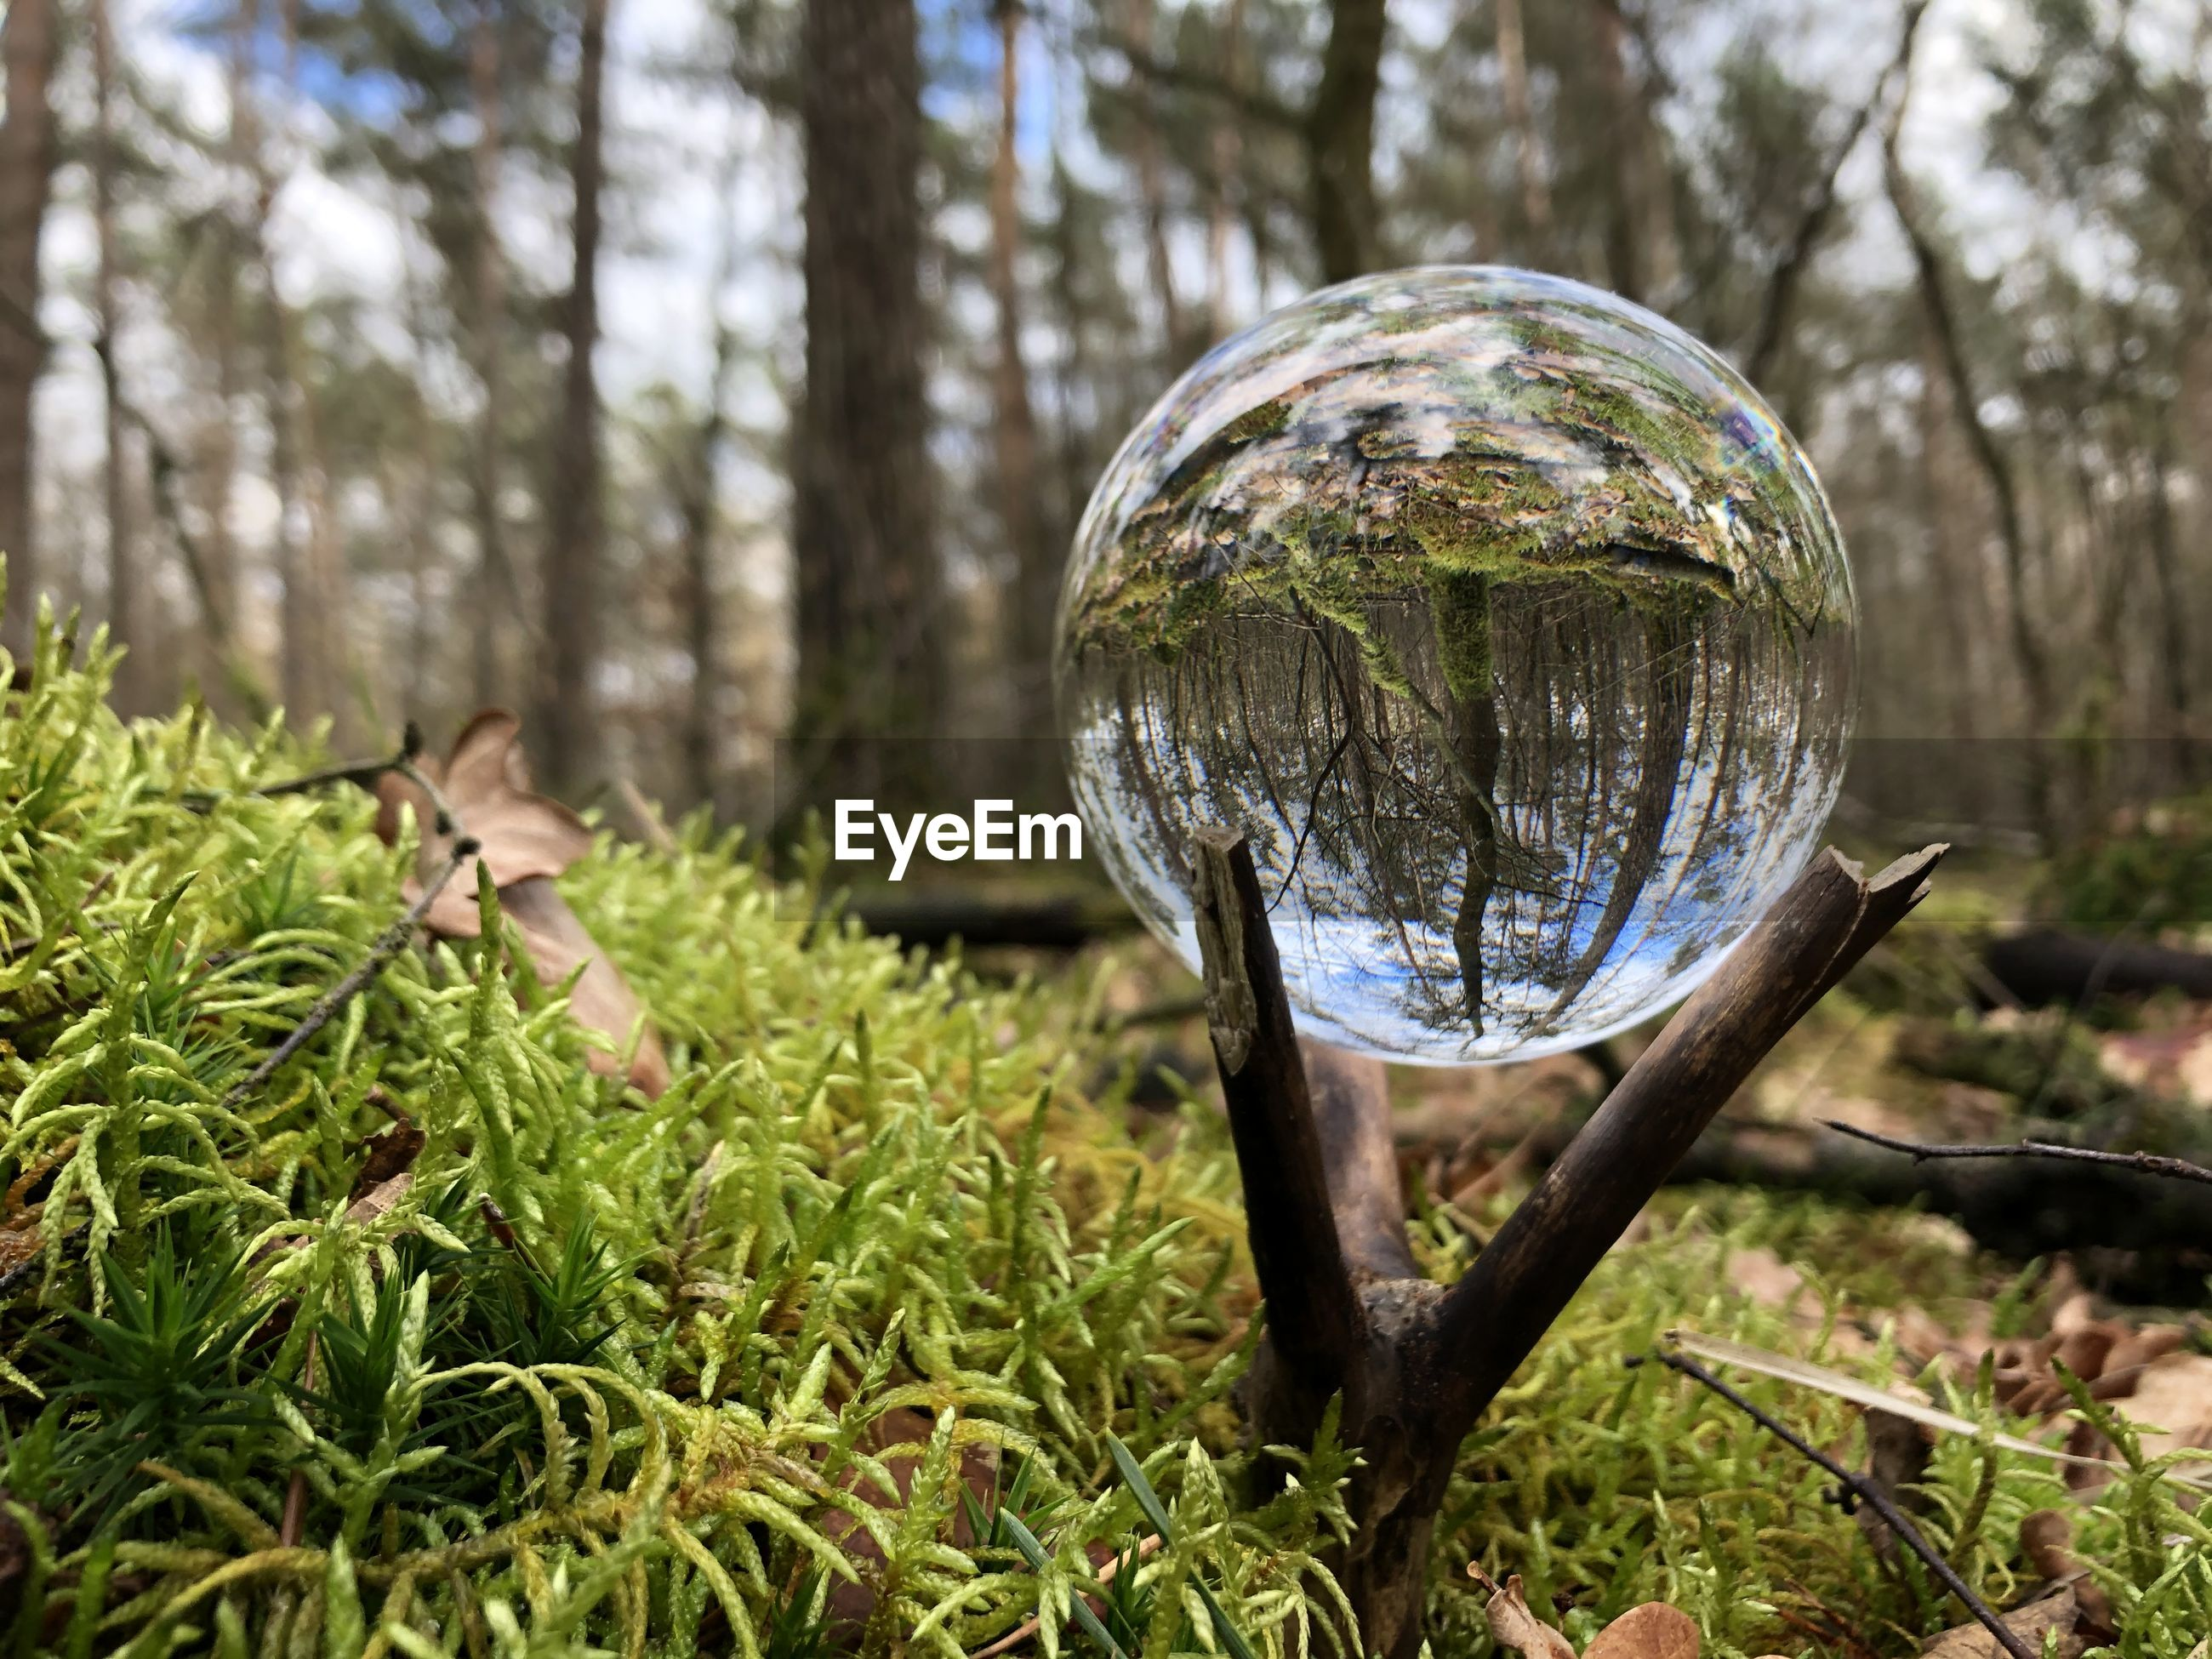 CLOSE-UP OF GLASS BALL ON FIELD IN FOREST